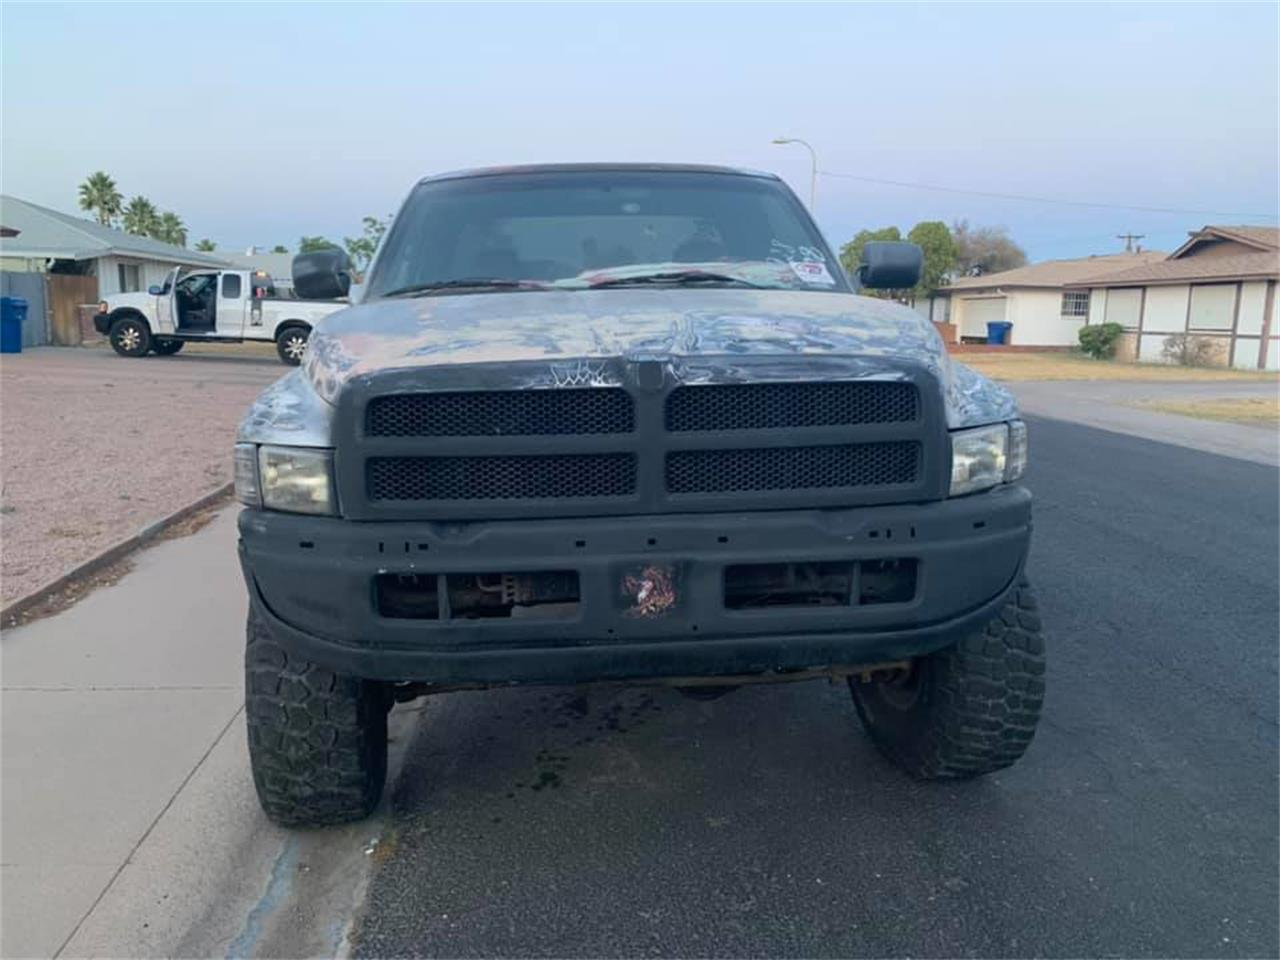 Large Picture of '96 Dodge Ram 1500 located in Arizona - $3,000.00 Offered by a Private Seller - QK1X